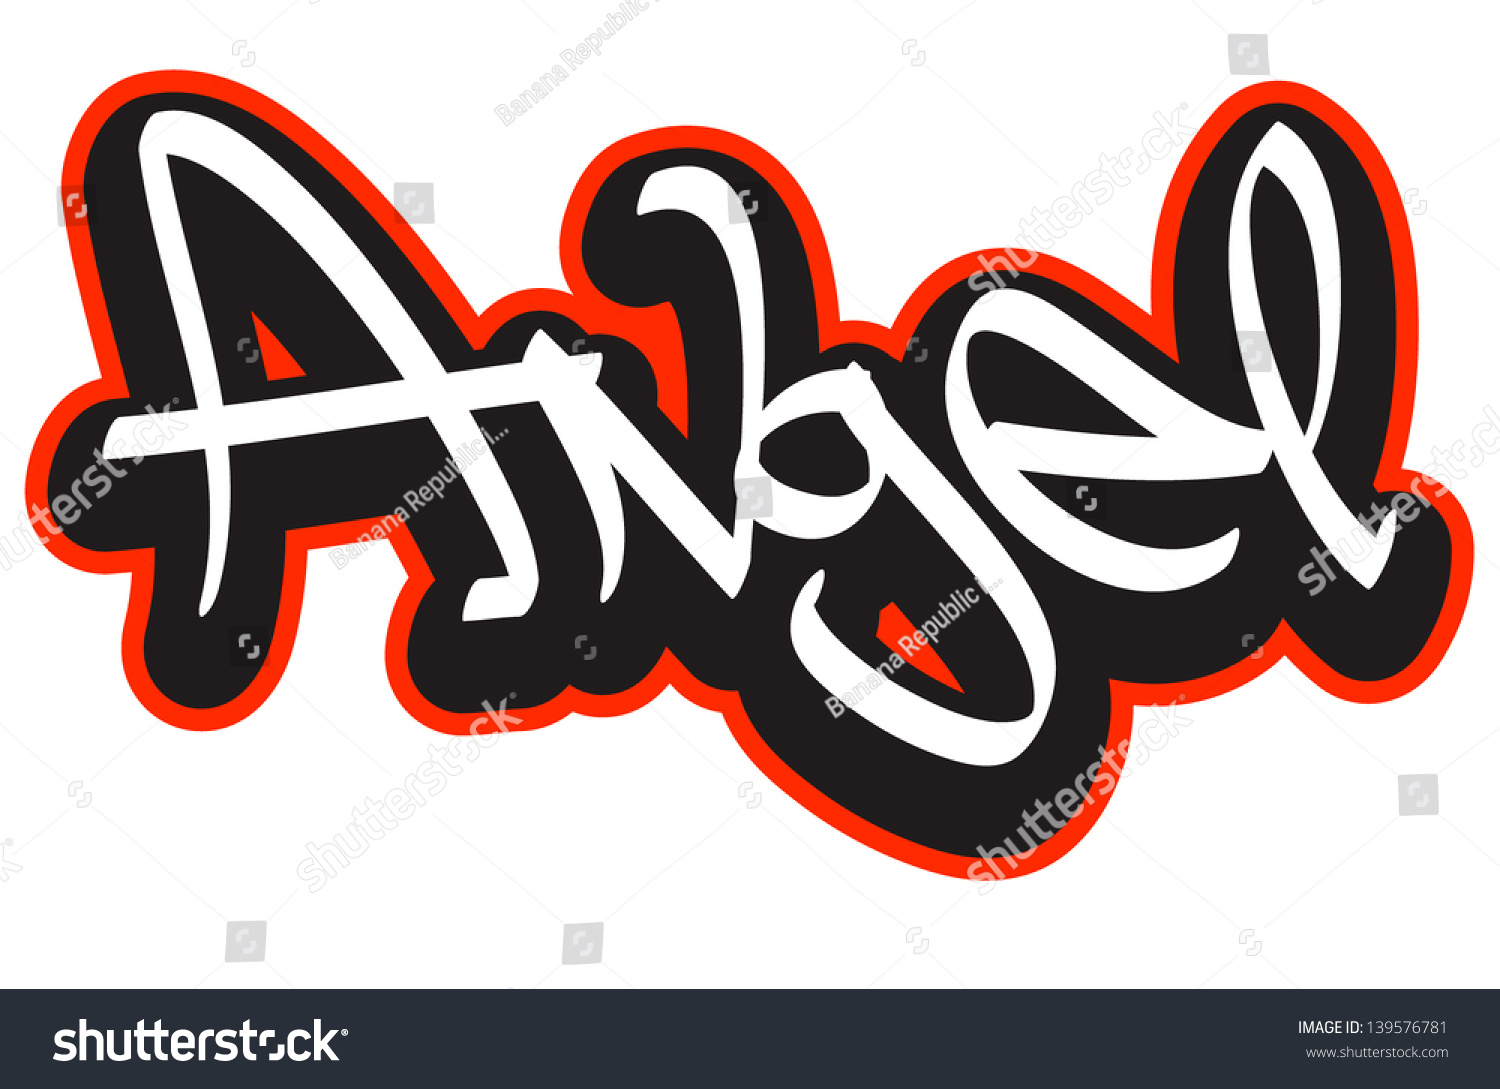 angel graffiti font style name hiphop stock vector